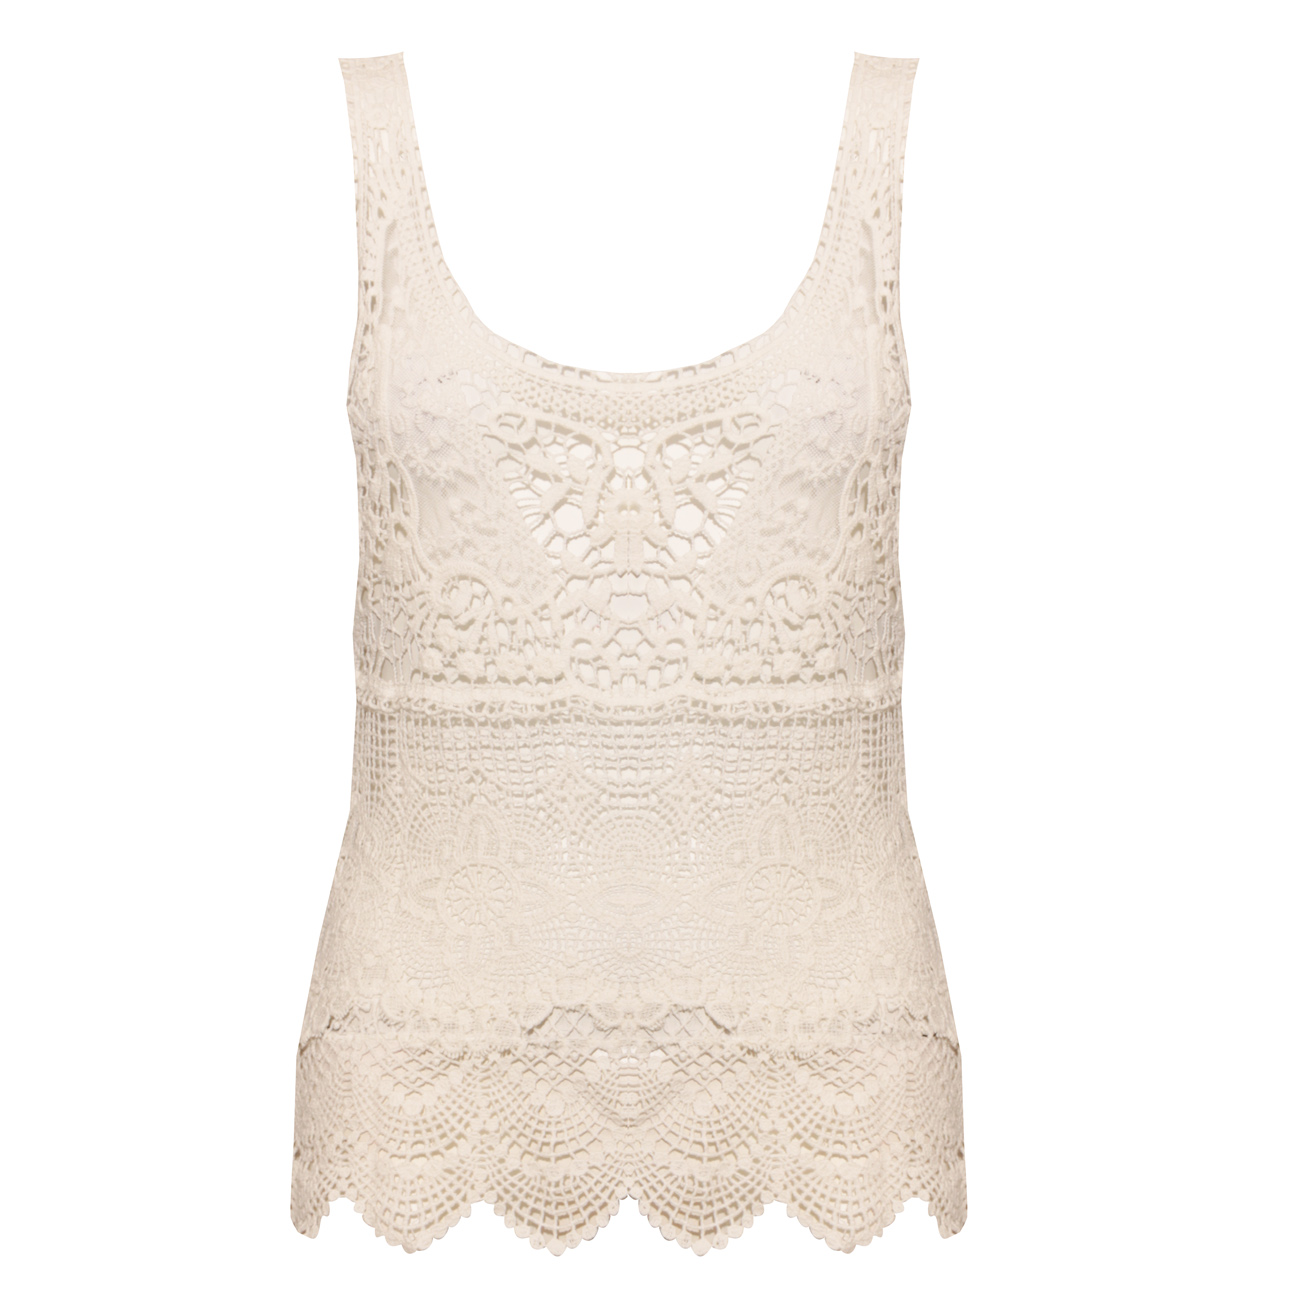 White Lace Crochet Top Preview